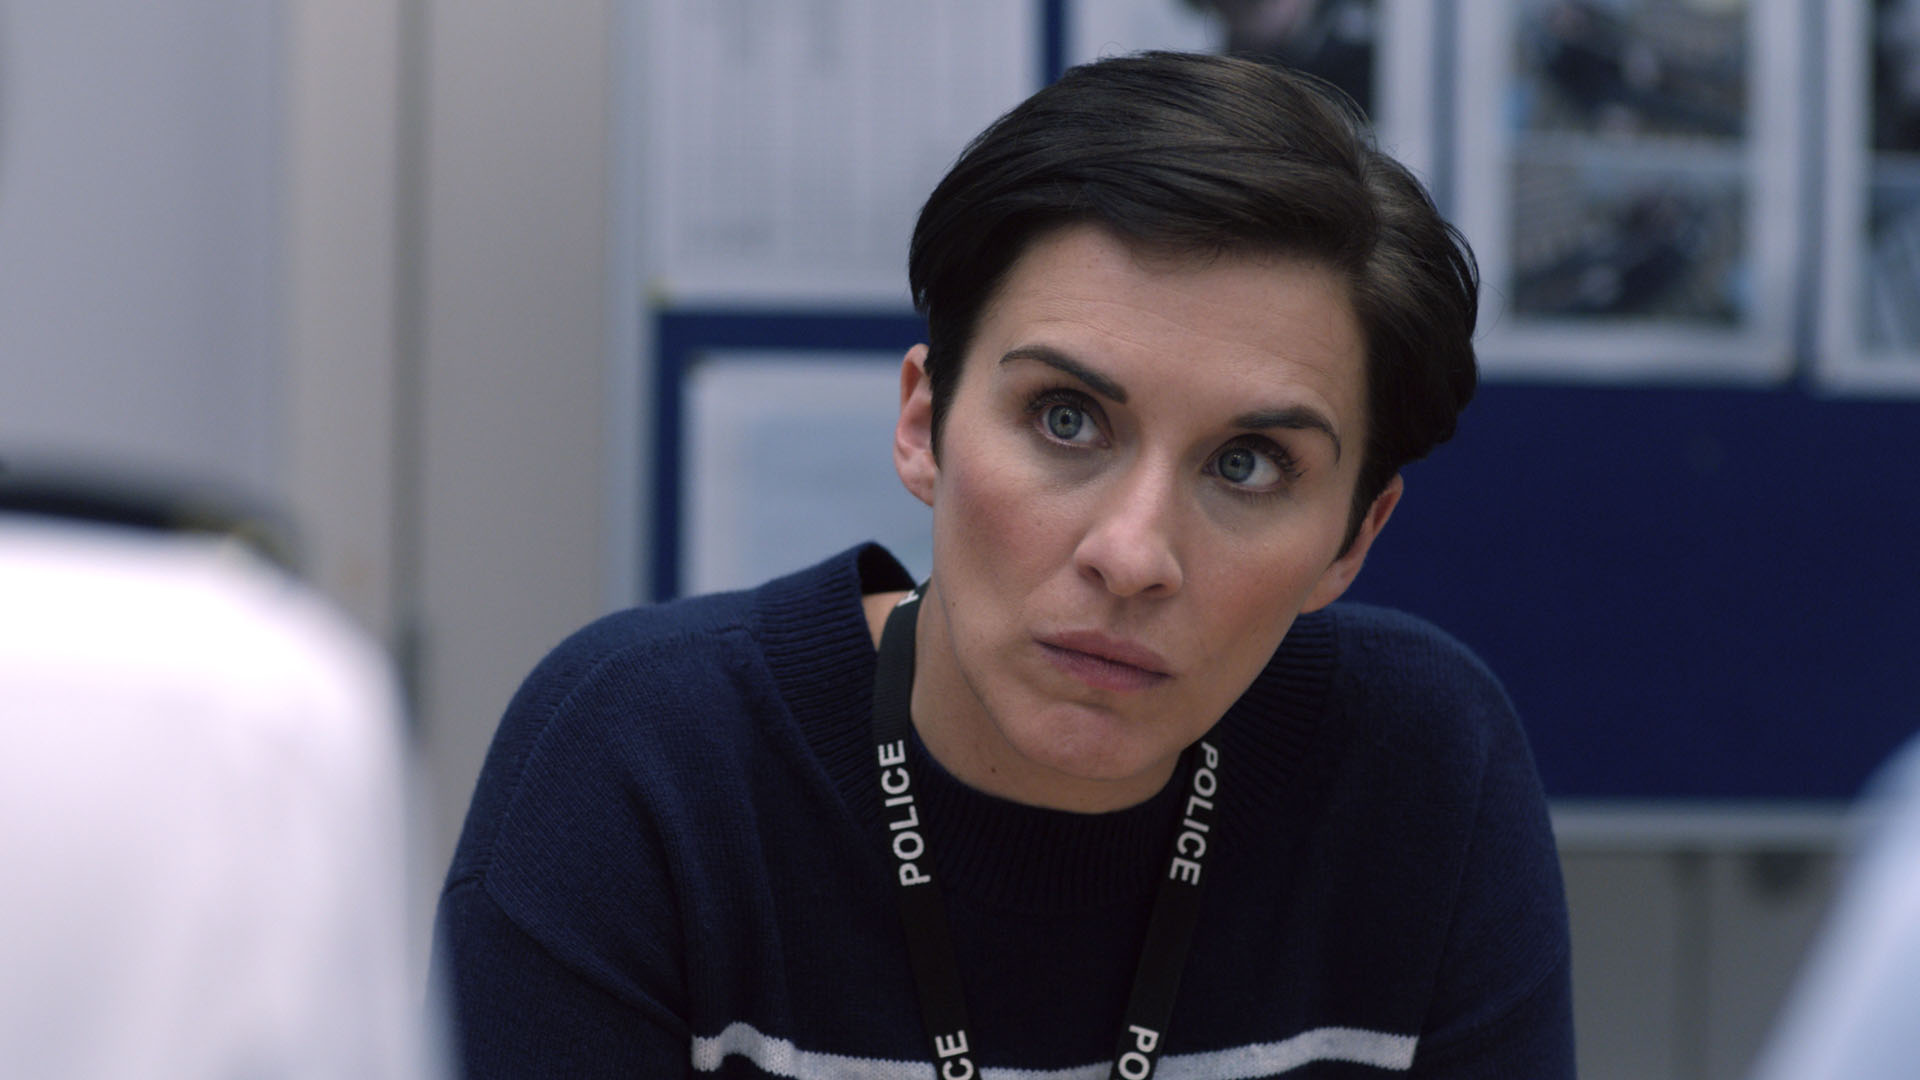 Line Of Duty's Vicky McClure reveals she turned down soap role